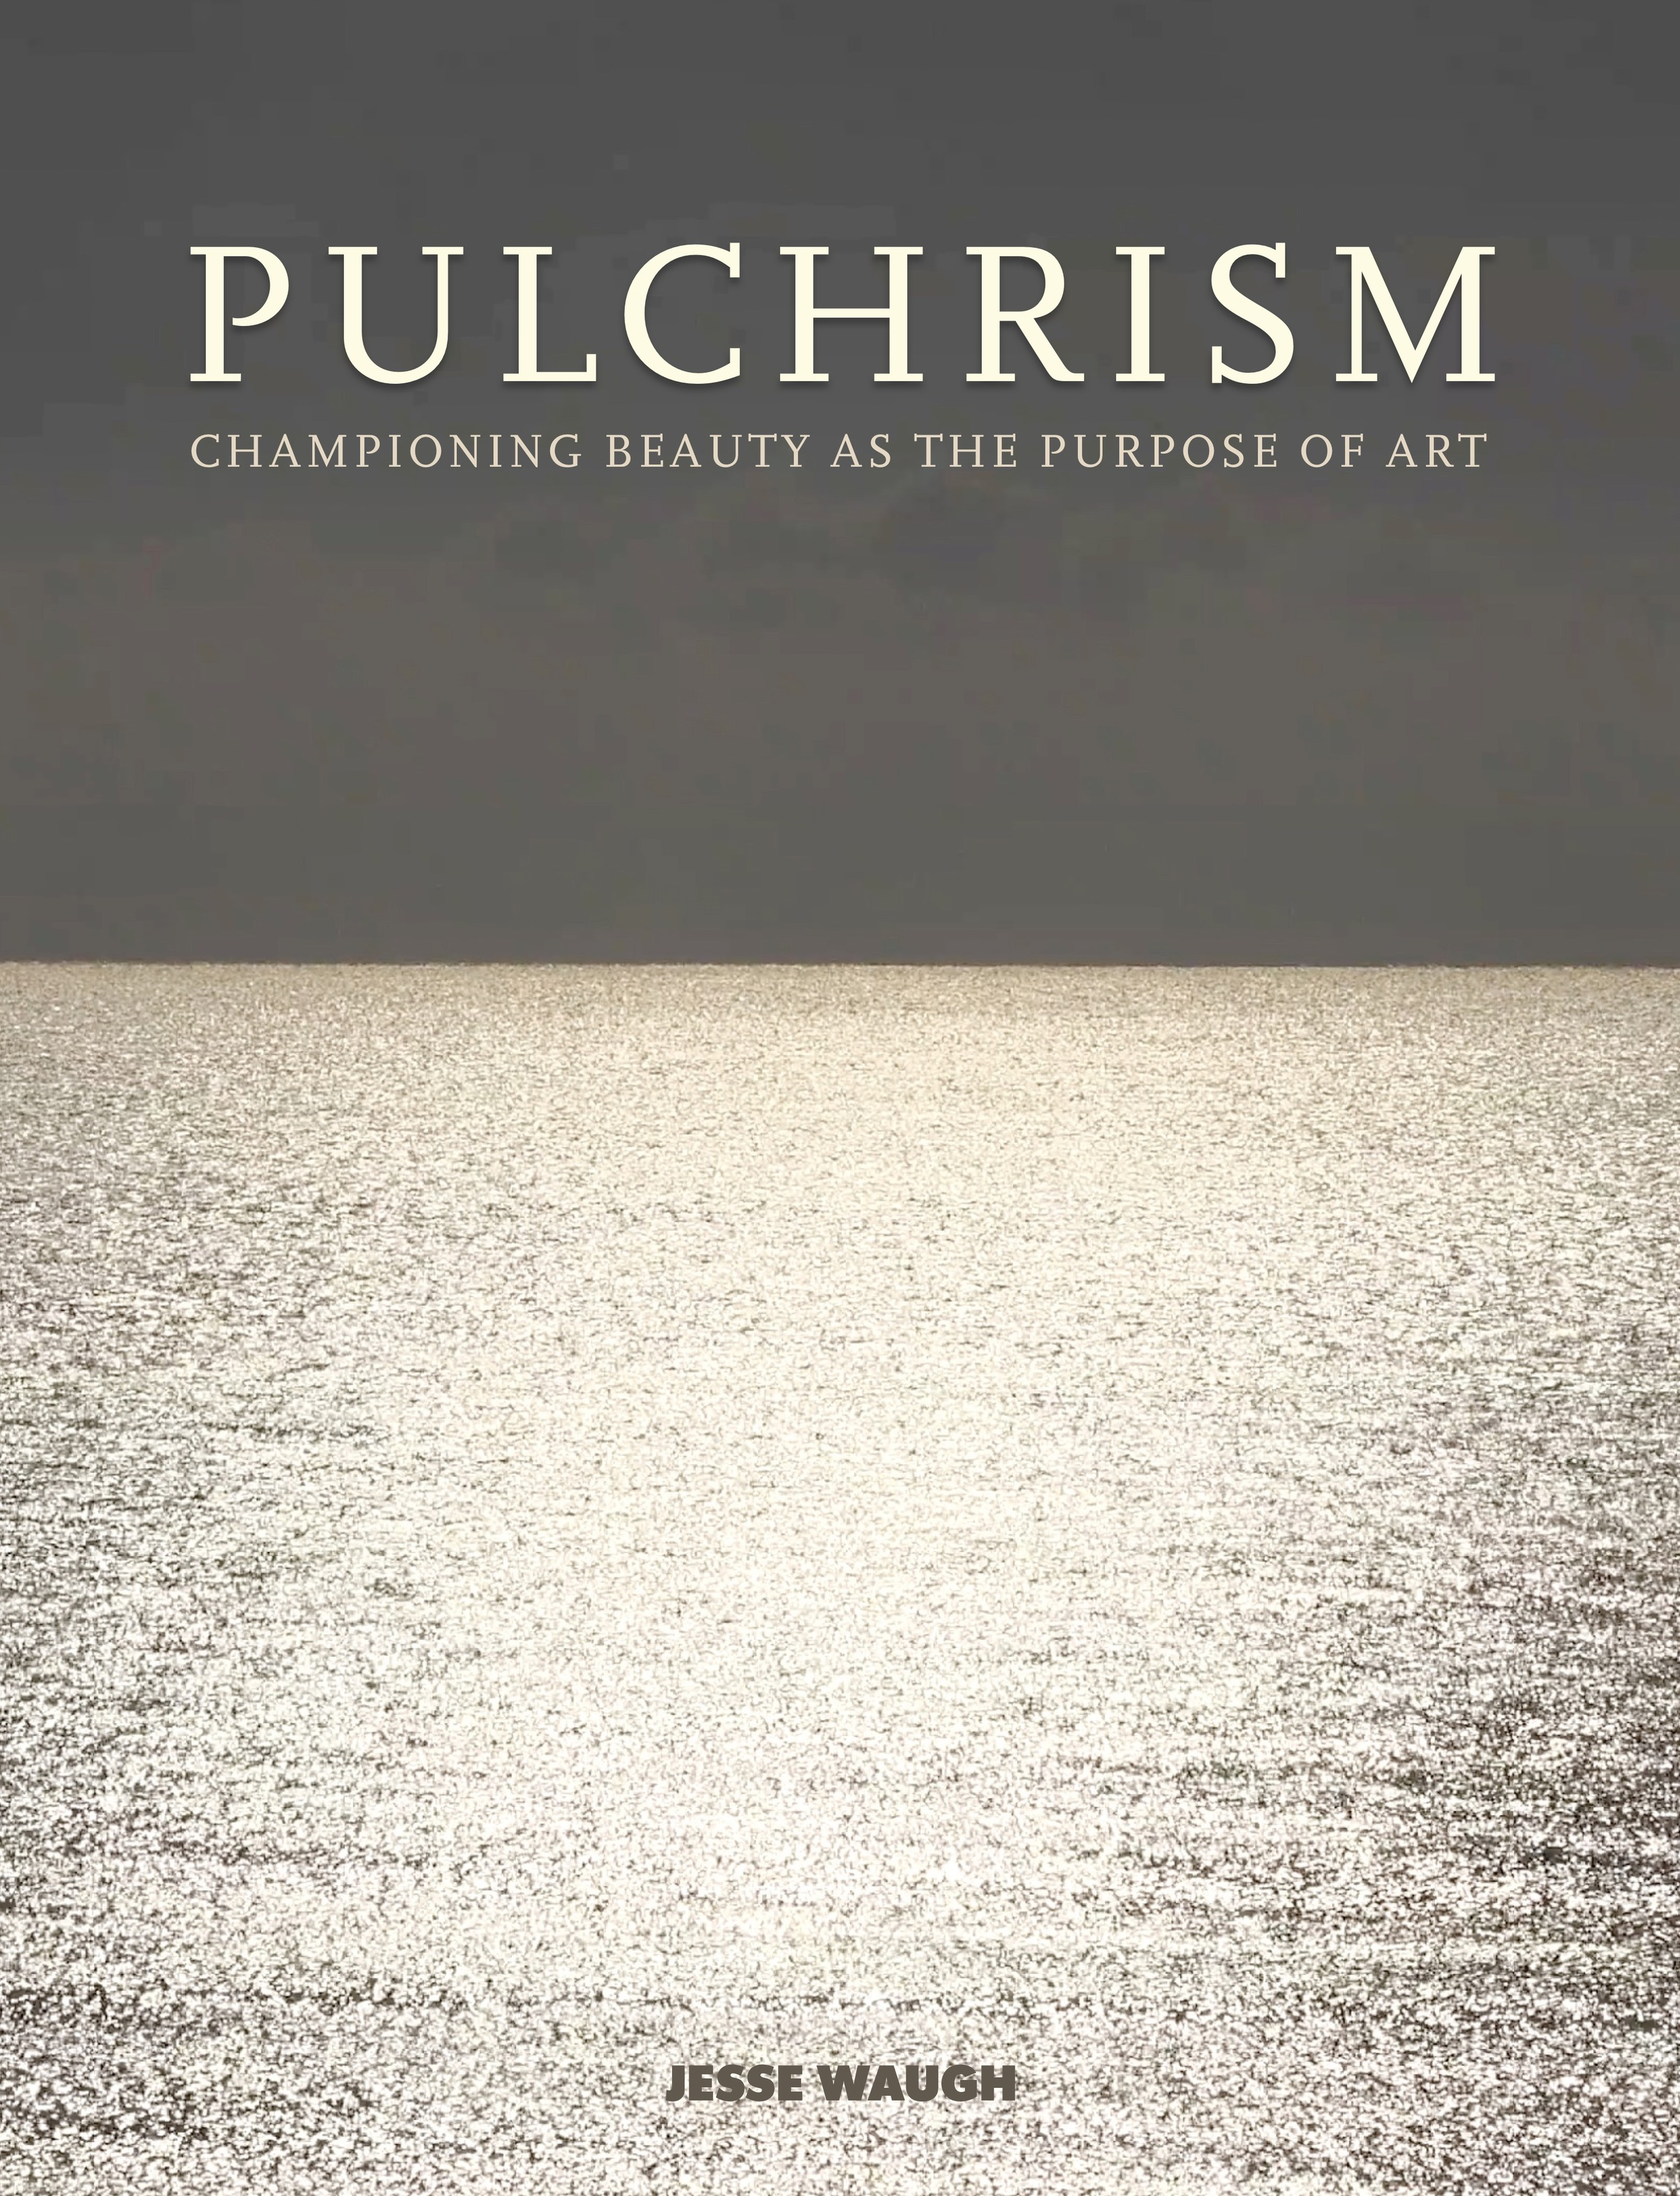 PULCHRISM: Championing Beauty as The Purpose of Art